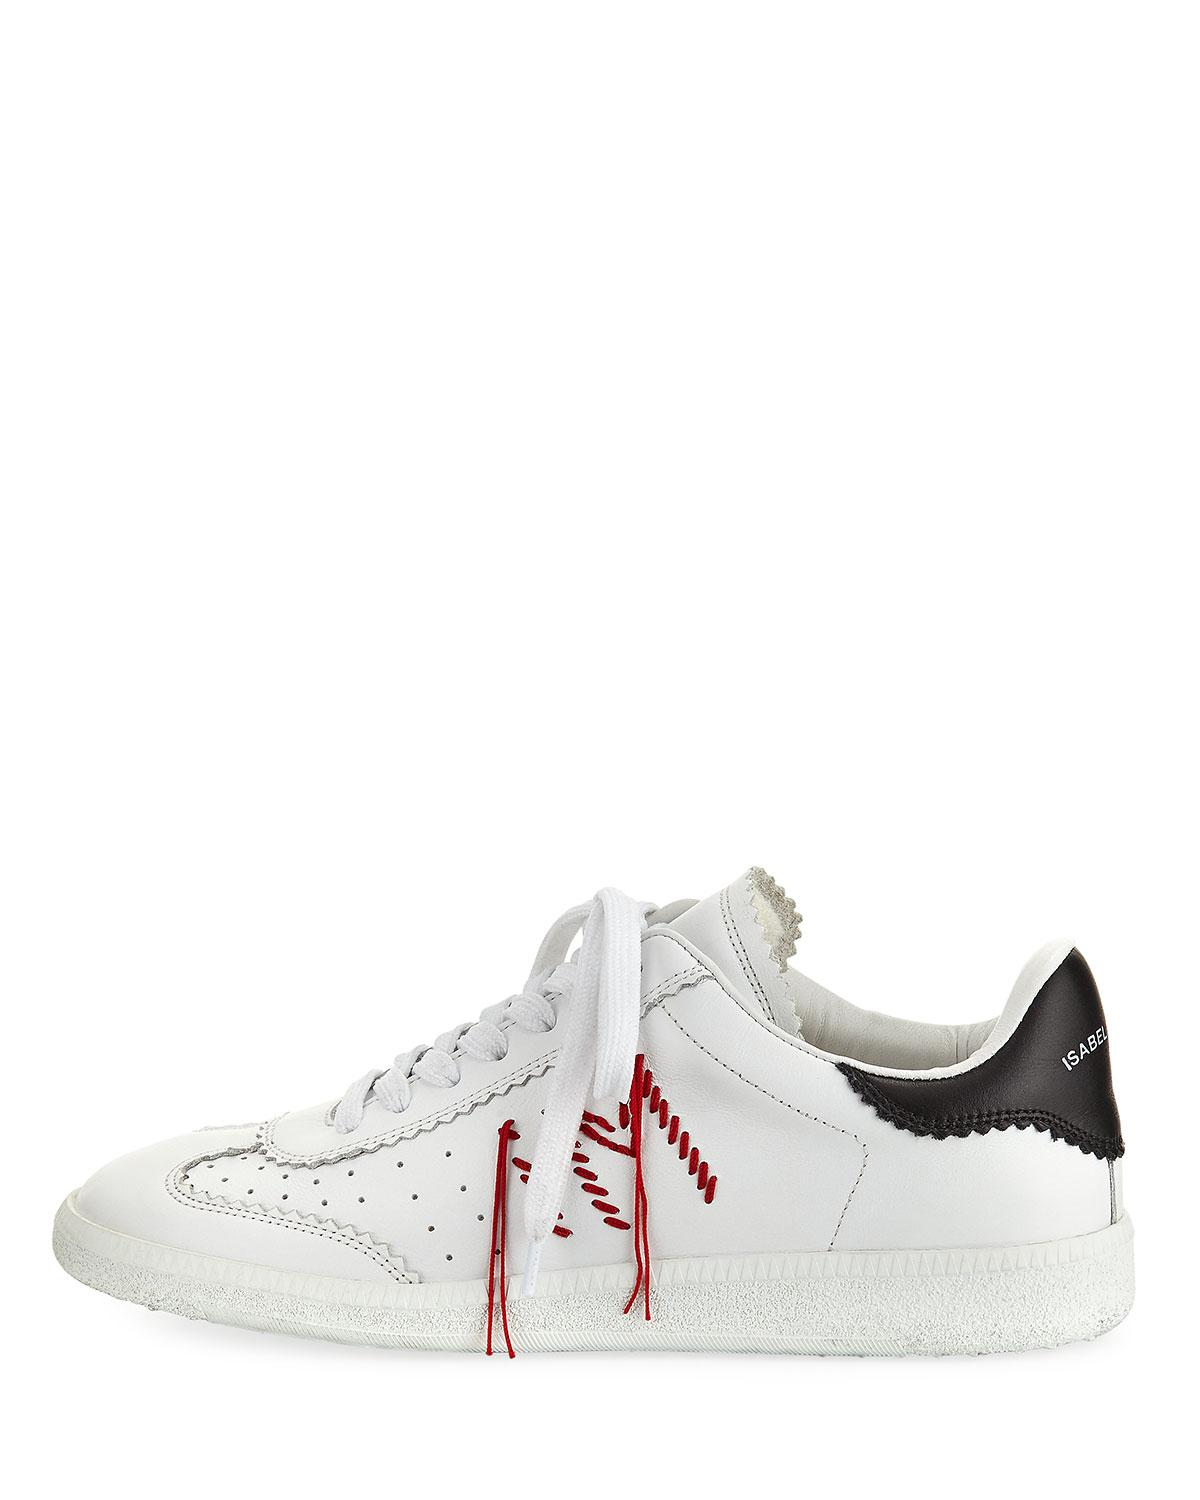 51b019a8a77 Isabel Marant Bryce Side-stitch Low-top Sneaker in White - Lyst